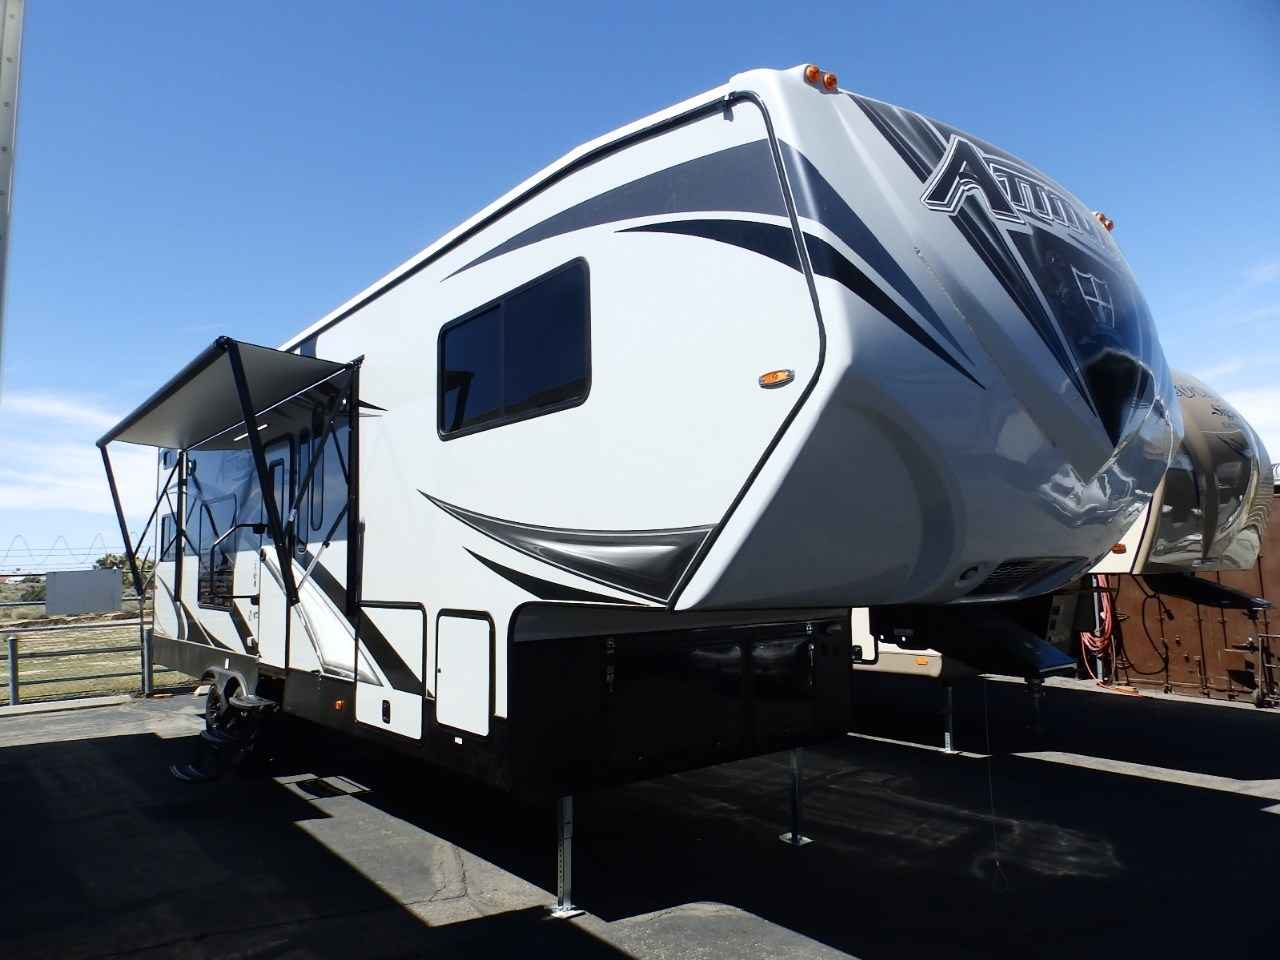 2017 New Eclipse Recreational Vehicles ATUDE 31CRSG, 2 SLIDES ...  Forest River Fifth Wheel Trailer Wiring Diagram on fifth wheel trailer dimensions, flatbed wiring diagram, fifth wheel trailer jack, fifth wheel trailer installation, fifth wheel trailer door, boat wiring diagram, motorcycle wiring diagram, fifth wheel trailer frame, toy hauler wiring diagram, fifth wheel electrical diagram, car hauler wiring diagram, 7 plug wiring diagram, rv wiring diagram, fifth wheel wiring harness, fifth wheel trailer repair, ultra wiring diagram, fifth wheel truck, snowmobile wiring diagram, fifth wheel diagrams for semis, van wiring diagram,